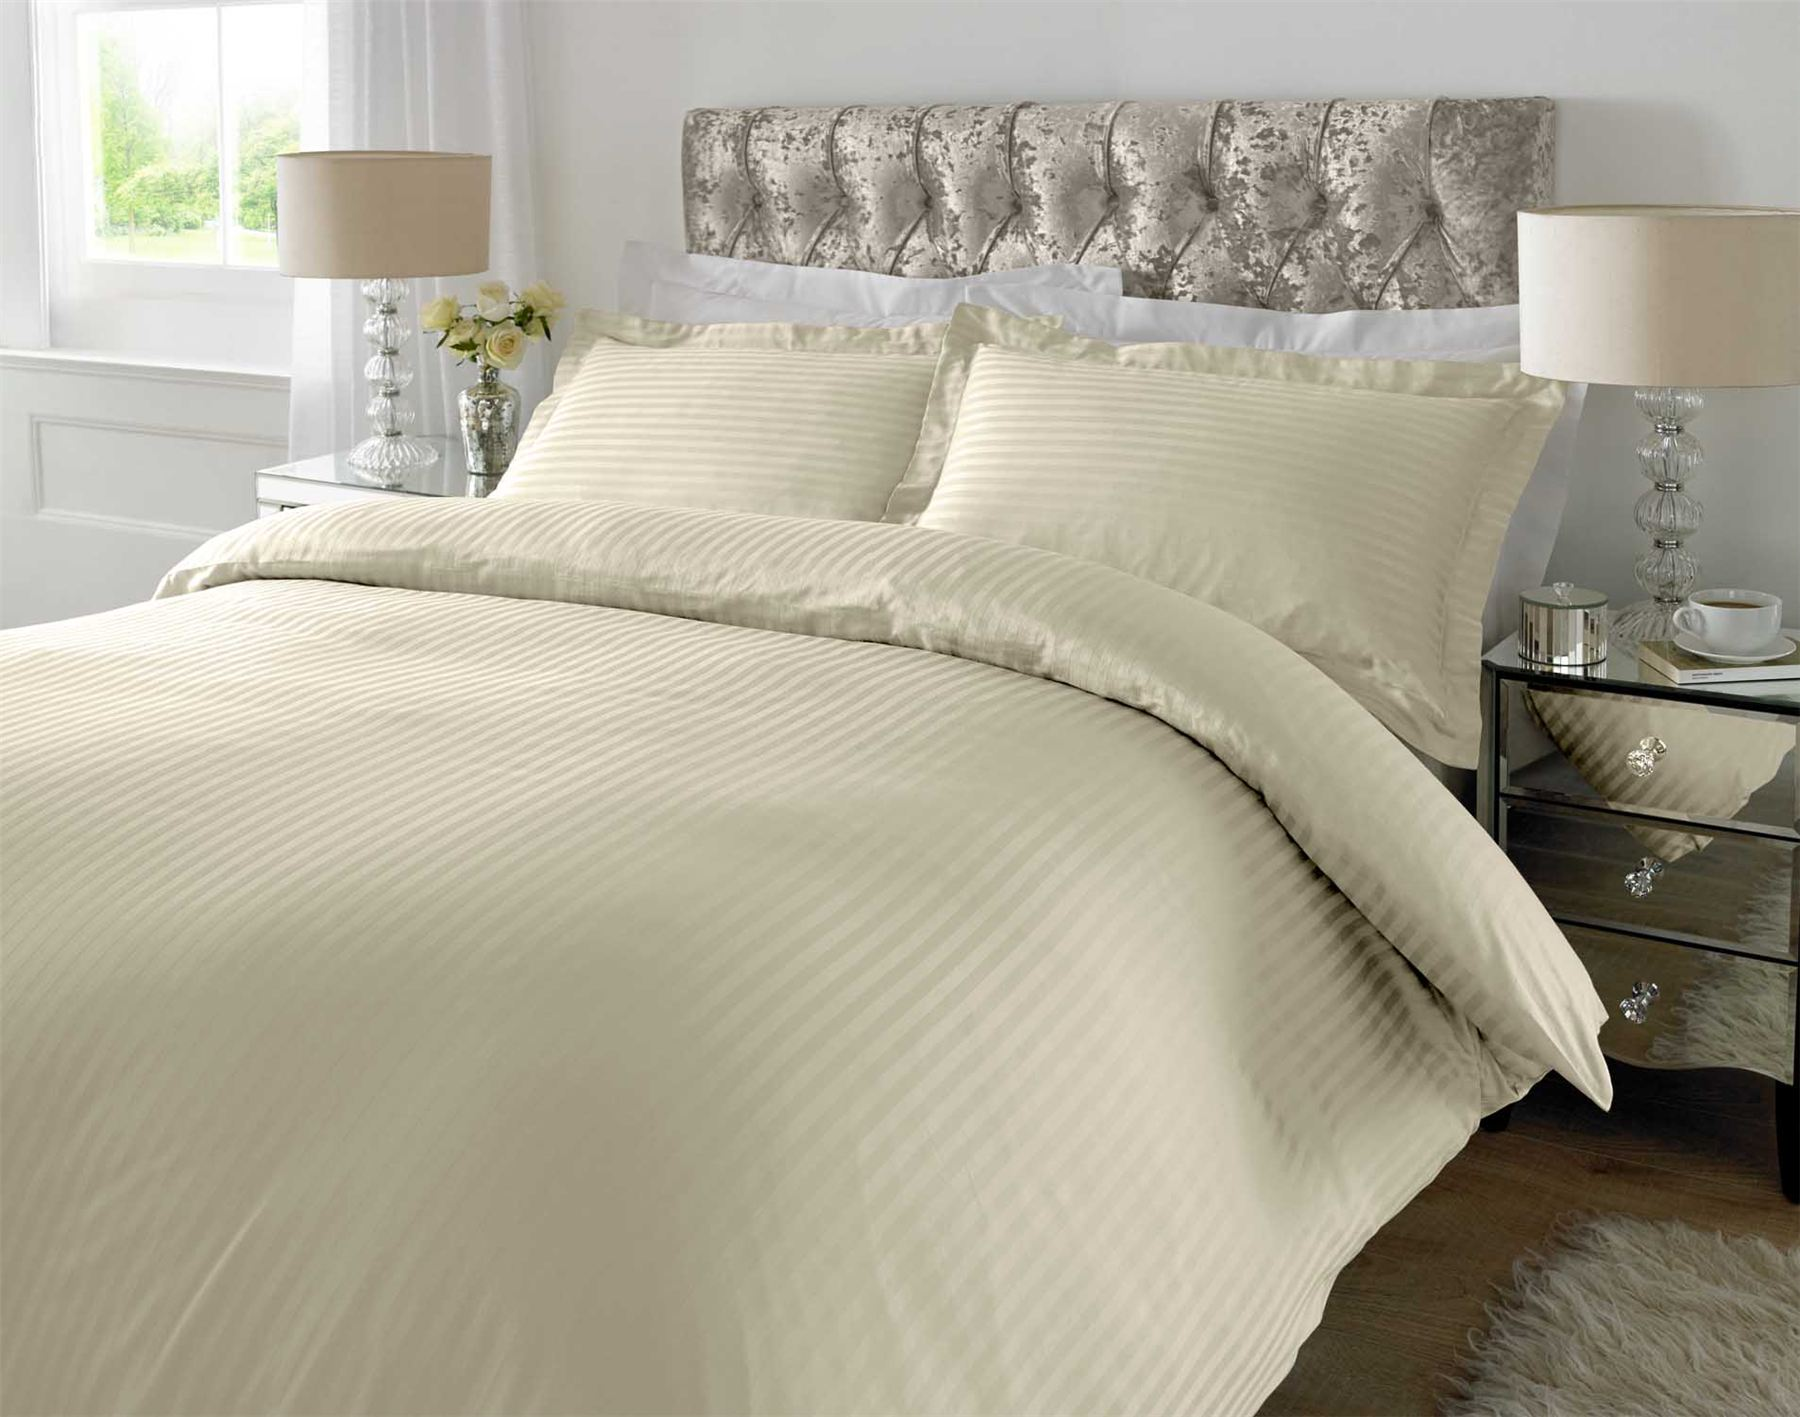 hestia sets cover hestie bedroom l en luxury covers thread count quilt duvet designed contents uk silver